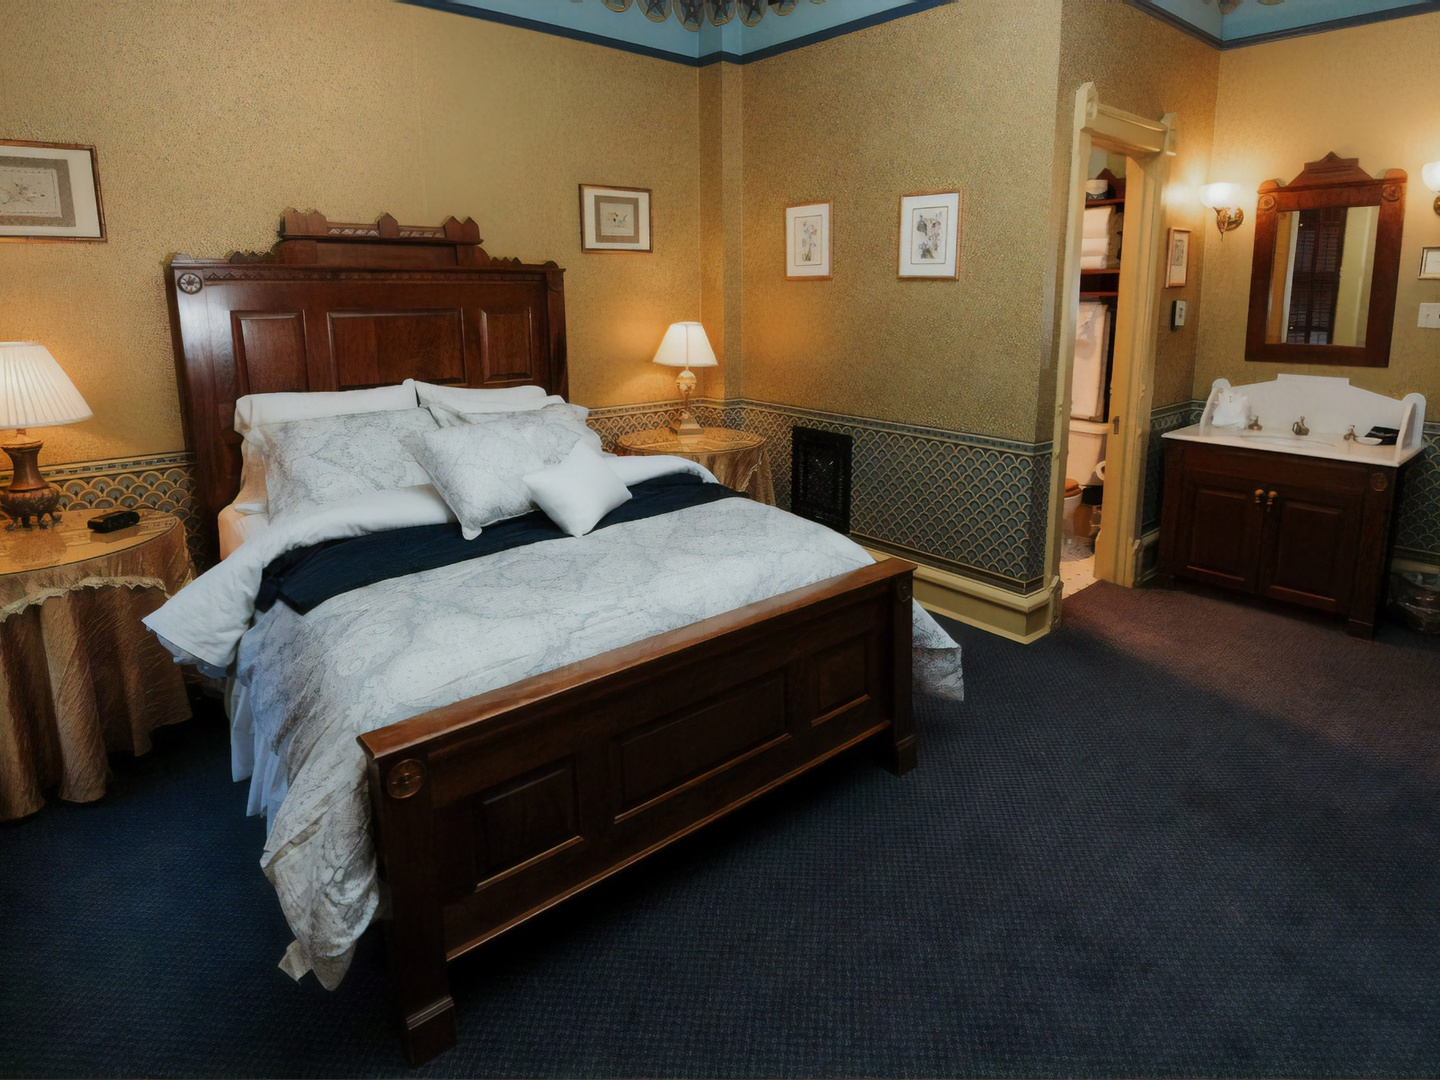 A bedroom with a bed and desk in a room at Inn at Pine Terrace.